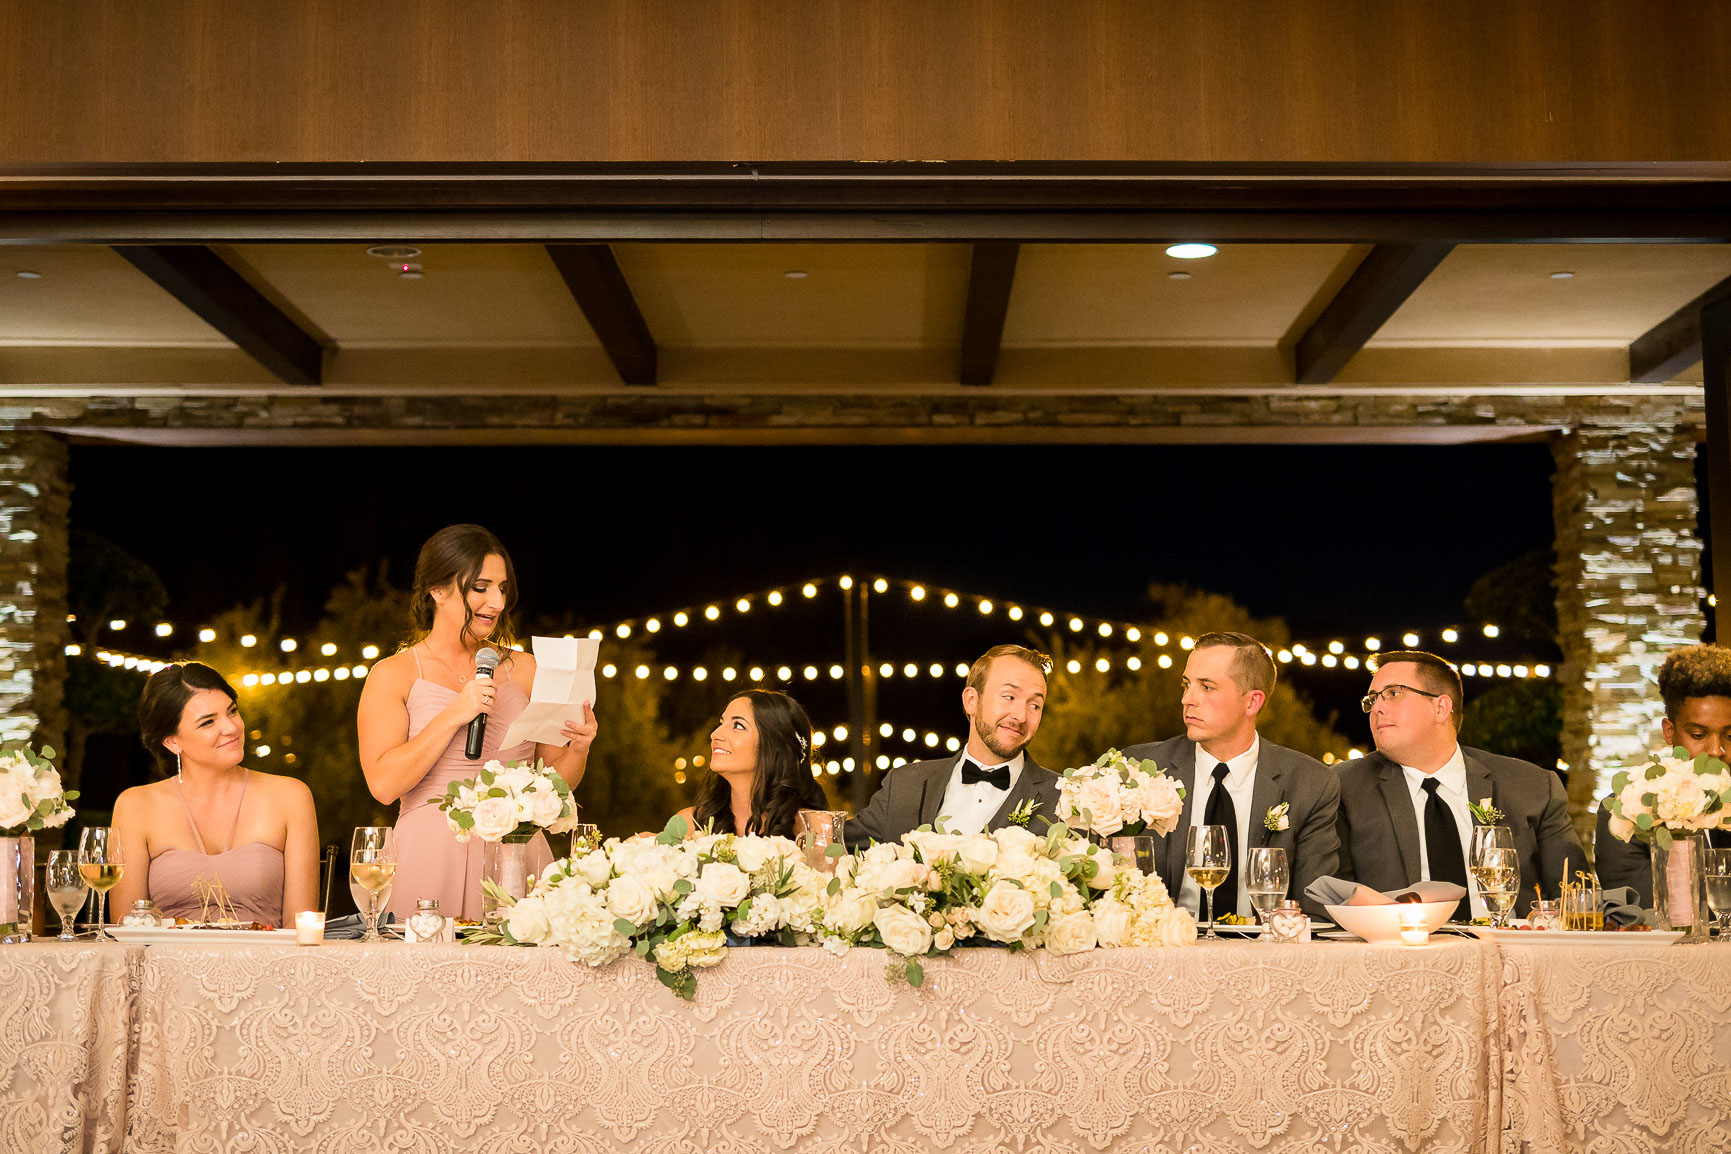 312-Alexa-Bryan-Wedding.jpg